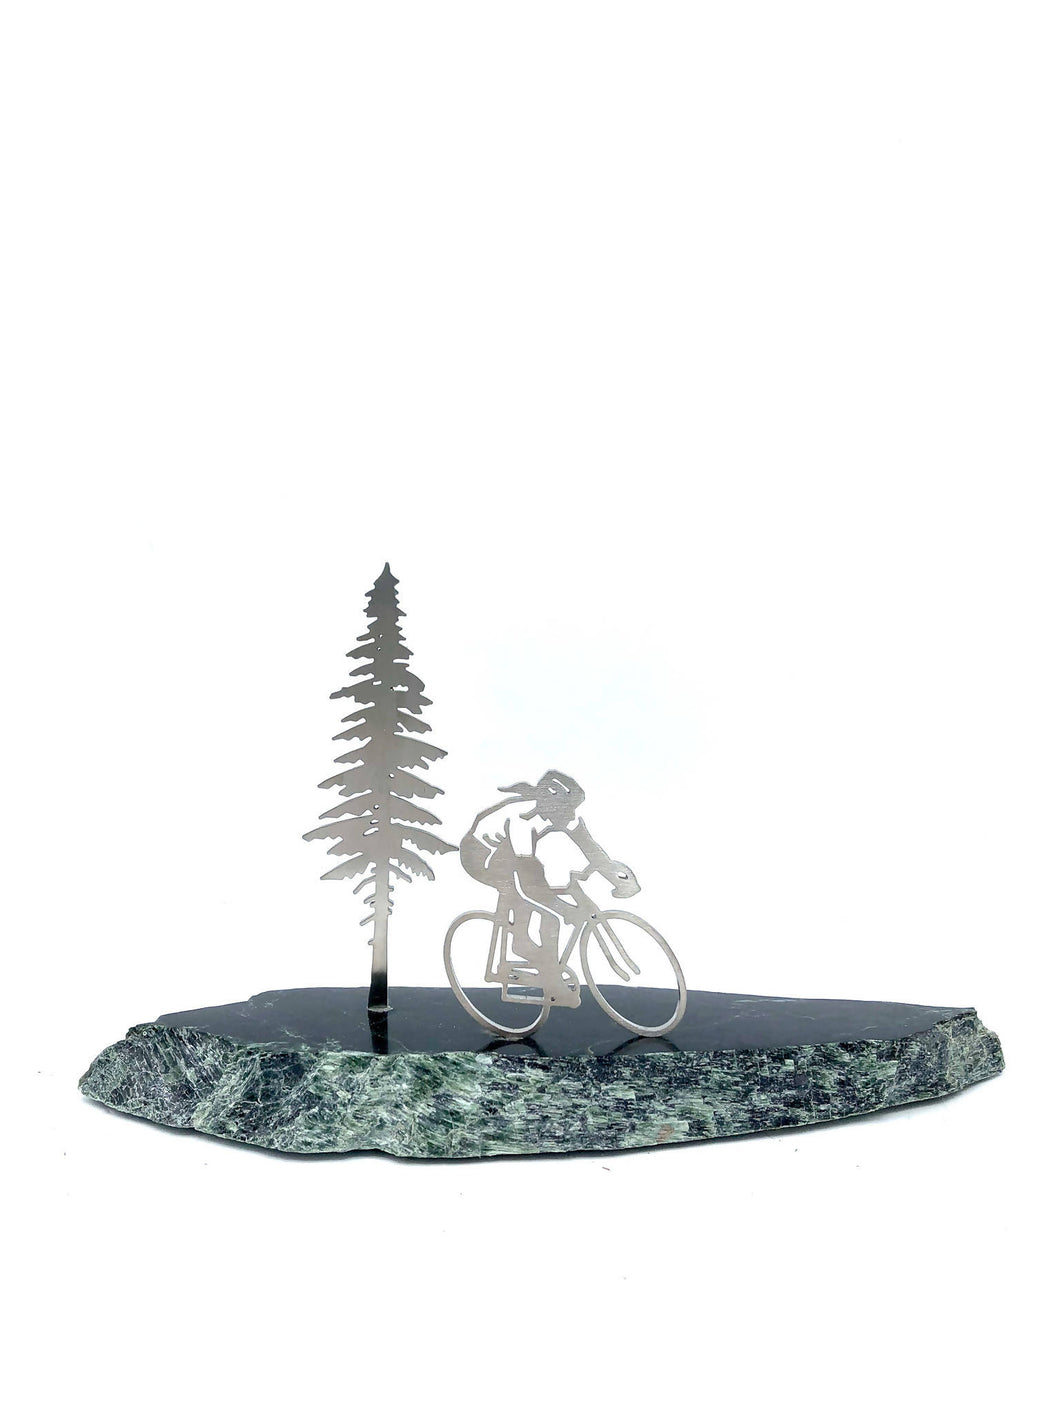 Valentine Special! Cyclist on polished stone with a tree. Each one comes with gift bag and